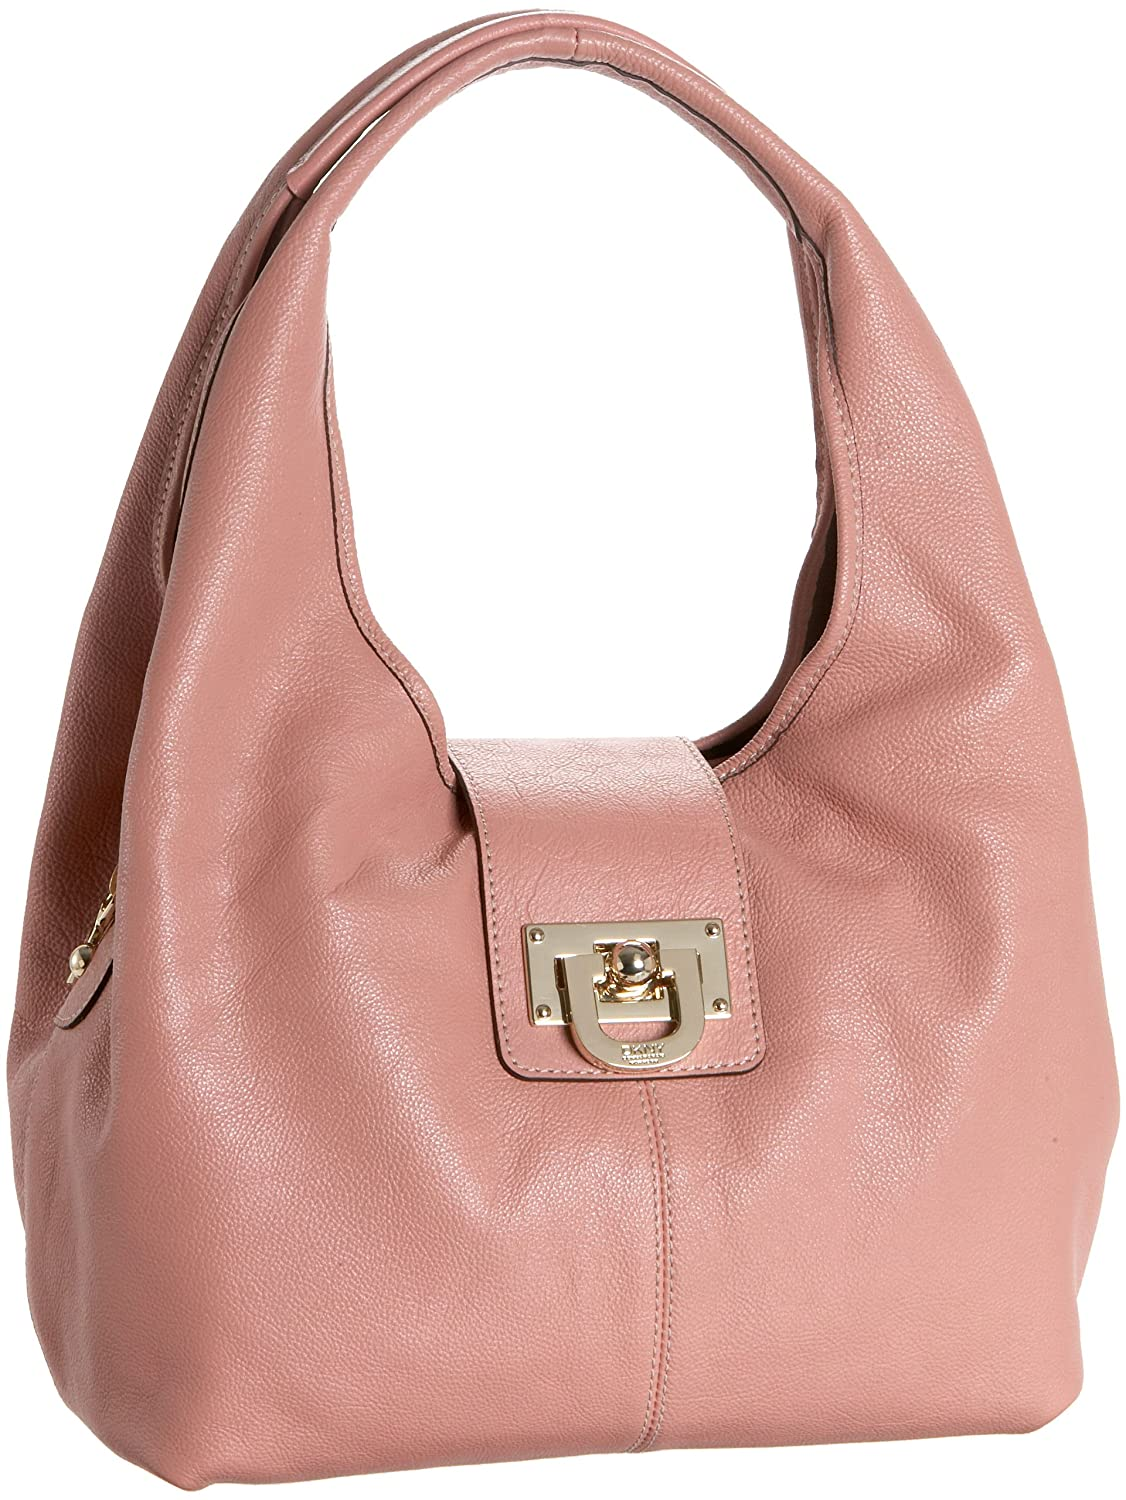 DKNY Vintage Leather Classics Hobo $158.79